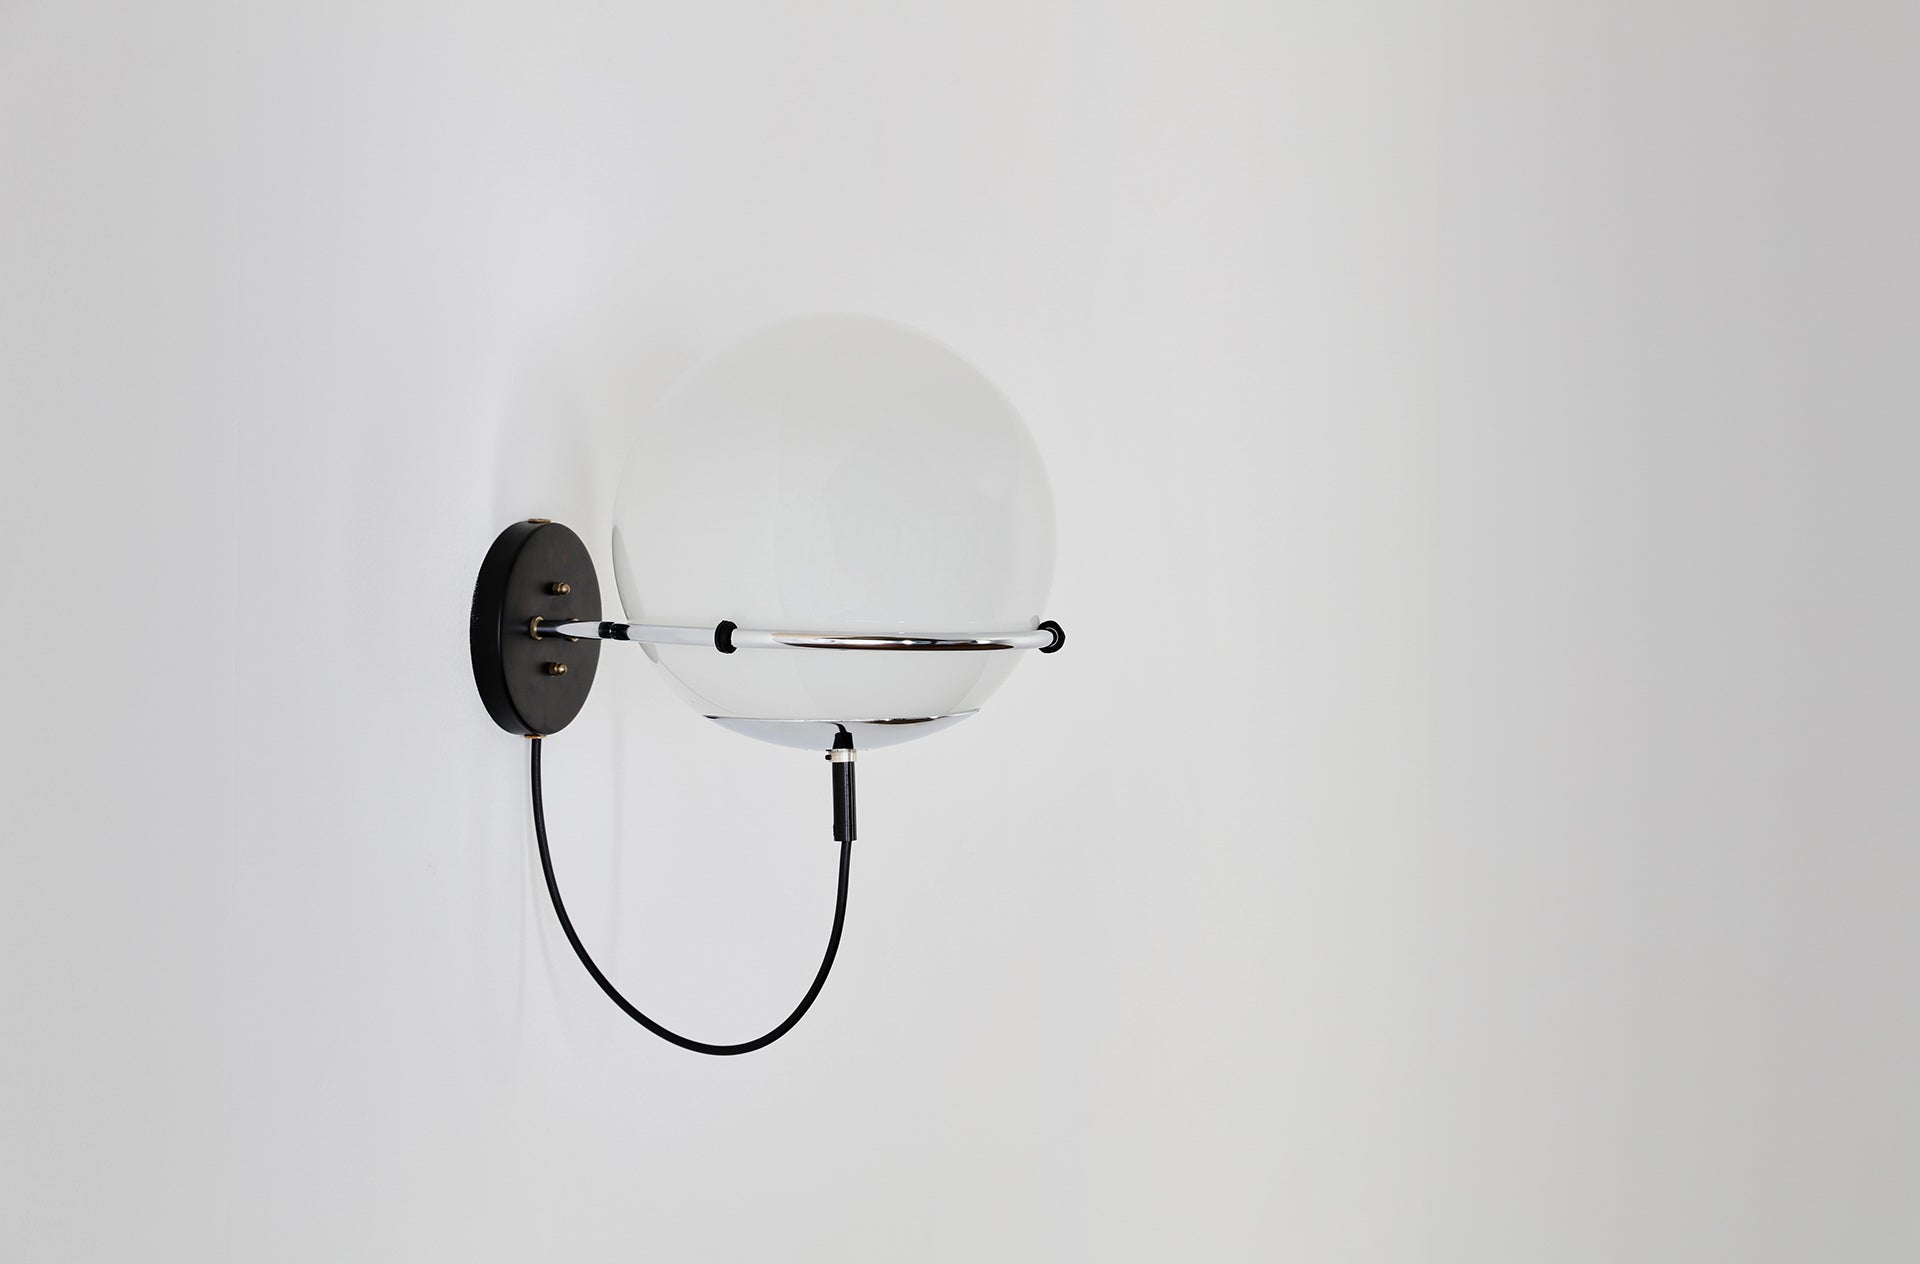 OCHTENDNEVEL /MORNING HAZE wall light by Frank Ligtelijn